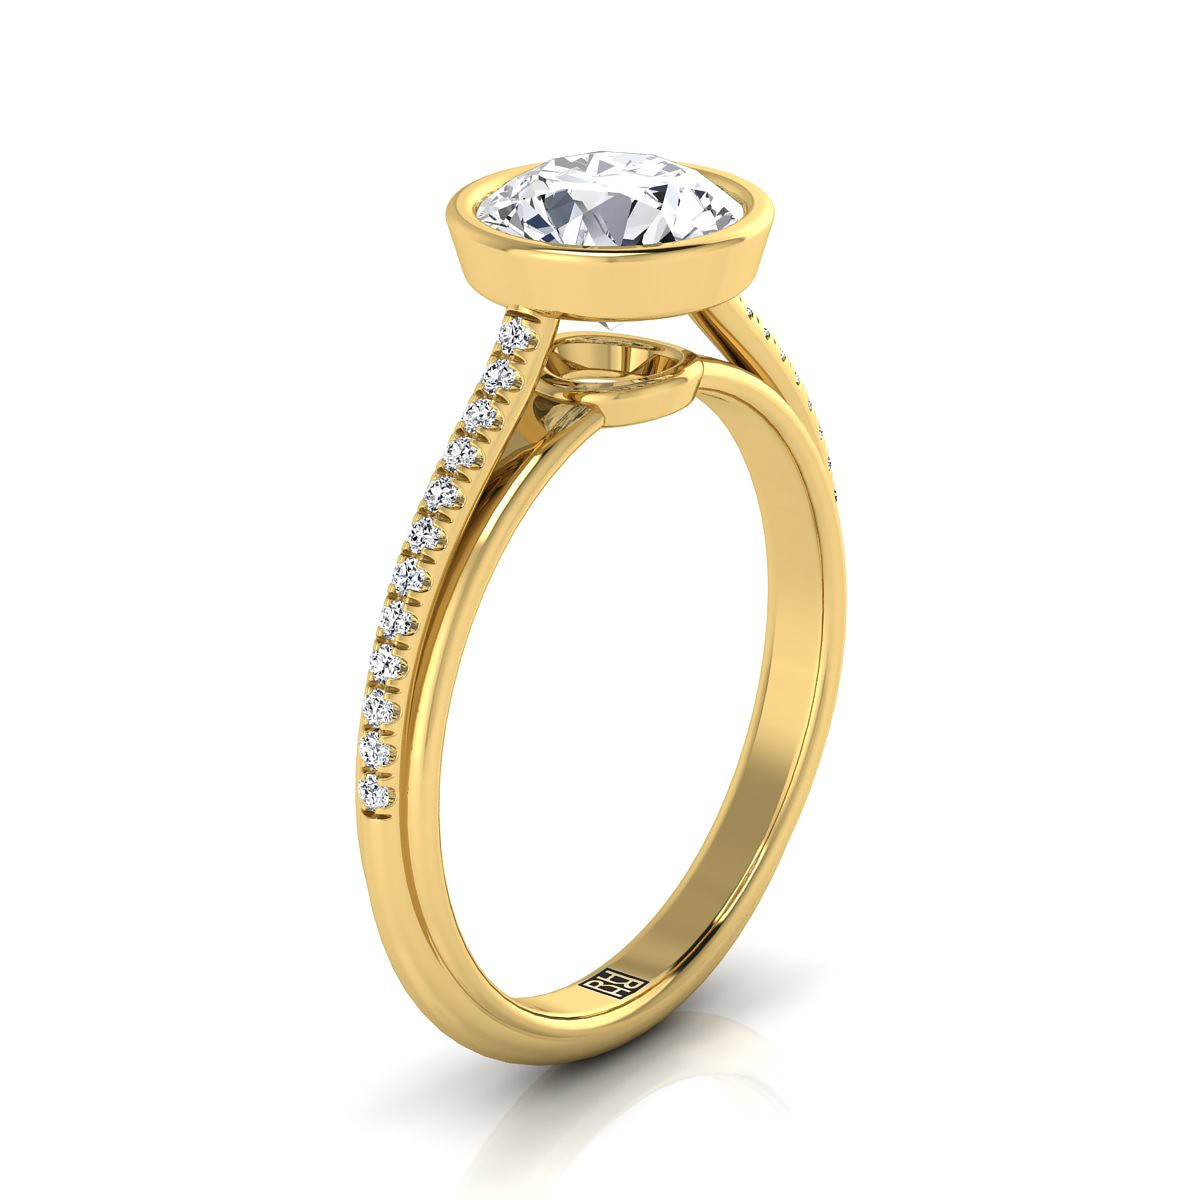 Diamond Bezel Solitaire Engagement Ring With Pave Shank In 14k Yellow Gold (1/10 Ct.tw.)